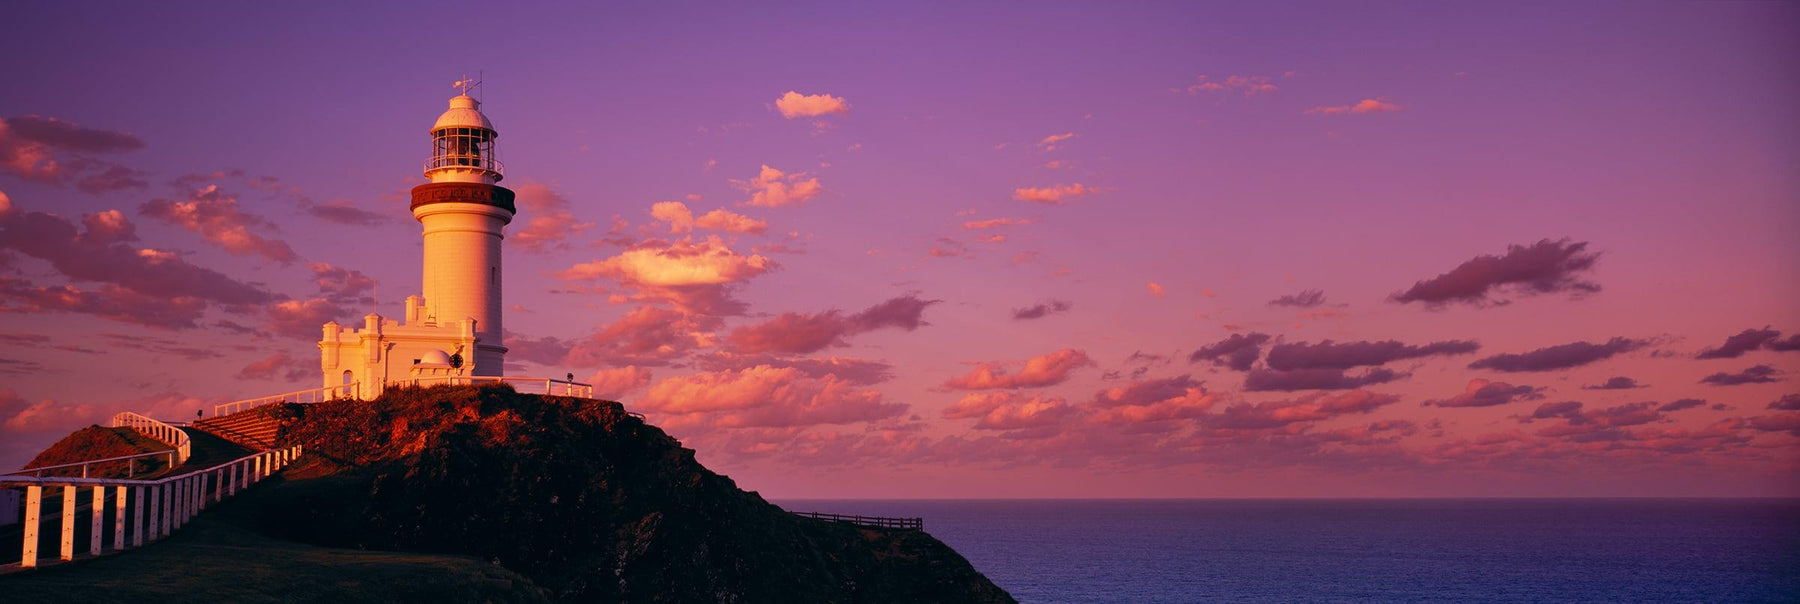 Cape Byron Lighthouse on a coastal cliff looking over the ocean at Byron Bay Australia at sunrise